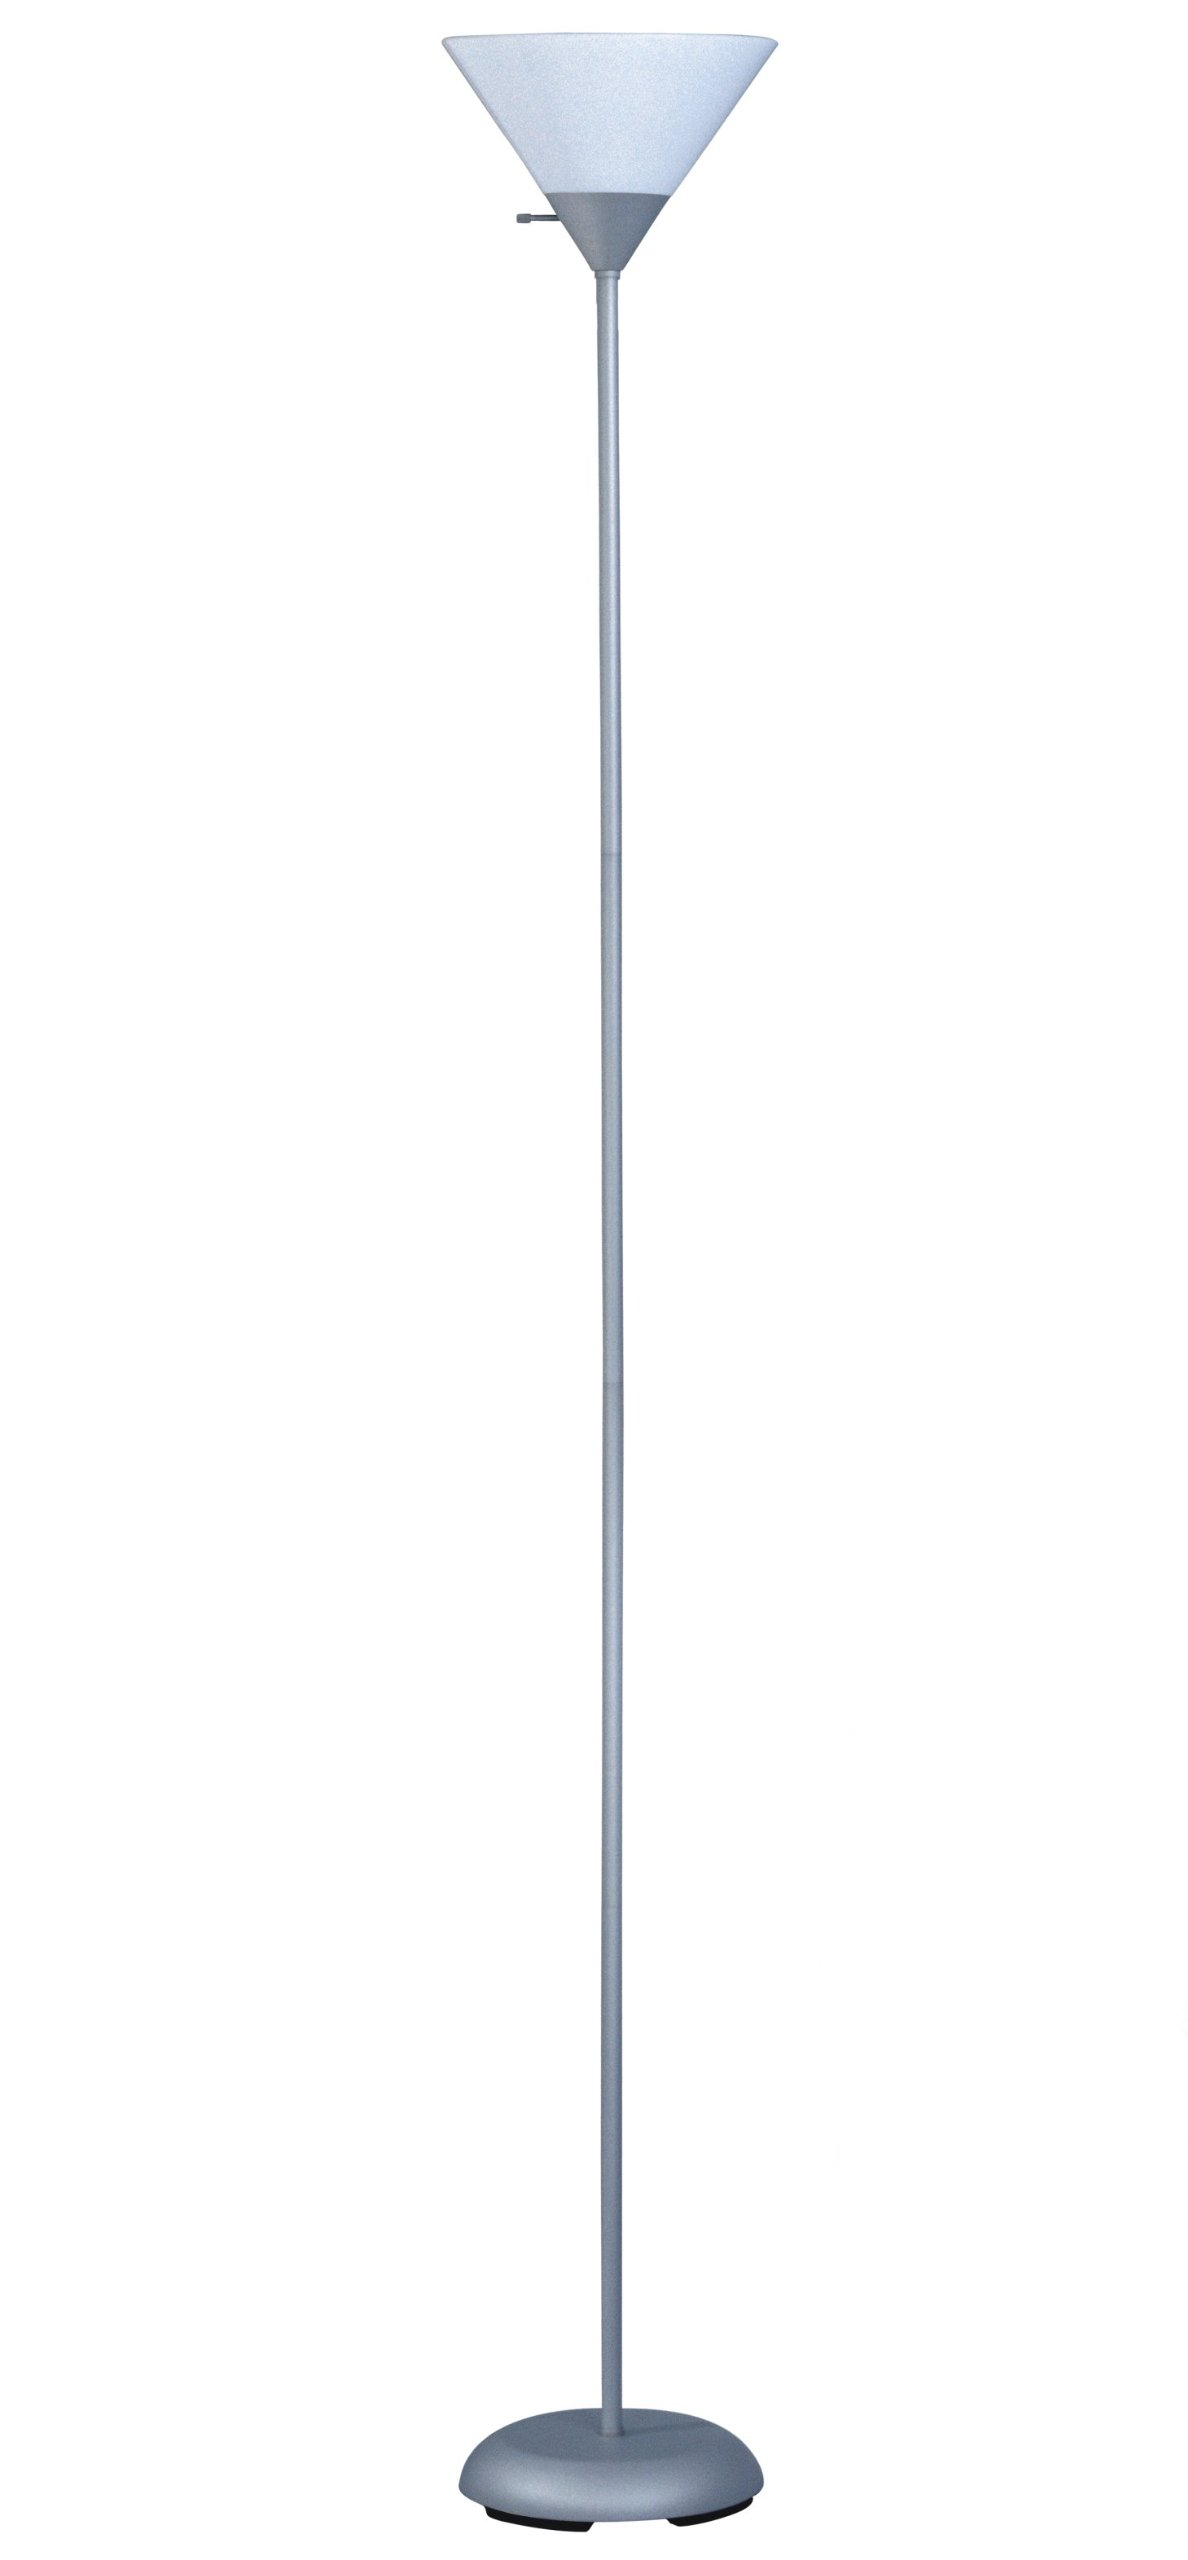 Park Madison Lighting PMF-3127-60 Torchiere Floor Lamp, Silver Finish with White Shade - MINIMALIST AND CHIC DESIGN: The neutral color and simplistic design of this lamp allows it to easily pair with essentially numerous interior design types. You won't have a problem complementing a preexisting theme - minimalist, traditional, industrial, mid-century, or contemporary décor, etc. The base of this lamp isn't wide, allowing it to accommodate tight corners and conveniently slide beneath sofas, TV  stands, chairs, recliners, etc. PORTABLE AND EASY TO ASSEMBLE: This lamp is easy to assemble, and can be set up without additional tools or parts by following the instructions included in the packaging. It isn't too heavy and can be moved from room to room after assembly if necessary. This lamp is compatible with a 150 Watt three way bulb allowing for a more personalized experience as you can rotate between different light settings. SAFE TO USE: This lamp is durable and features a weighted base making it less likely to tip over and fall. It is a perfect addition to any office, living room, hobby room, bedroom, dorm room, or play room, etc. and is an excellent source of functional lighting. The lamp's frosted shade prevents the lamp from overheating while it is being used. - living-room-decor, living-room, floor-lamps - 61g1yFhJmBL -